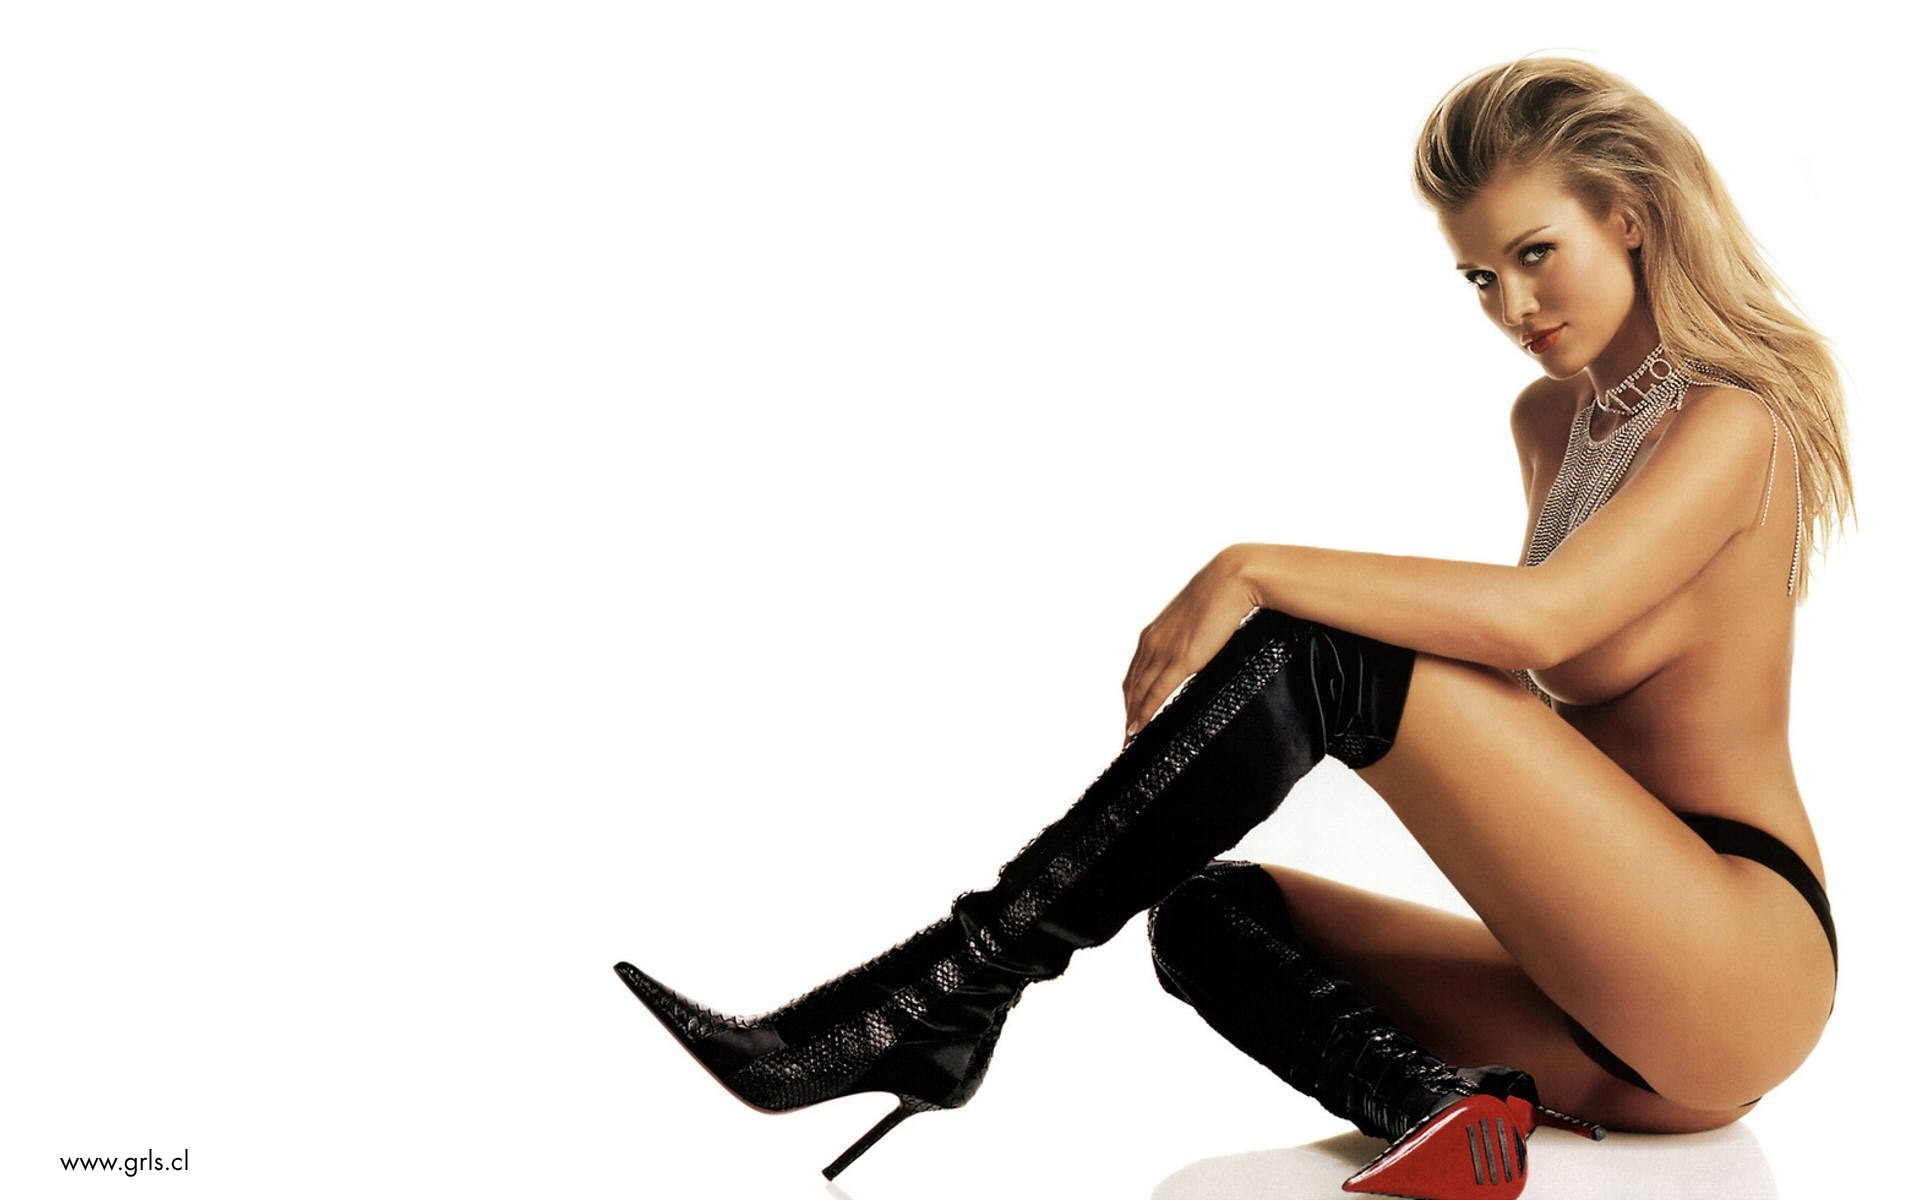 boots woman Joanna Krupa HD Wallpaper